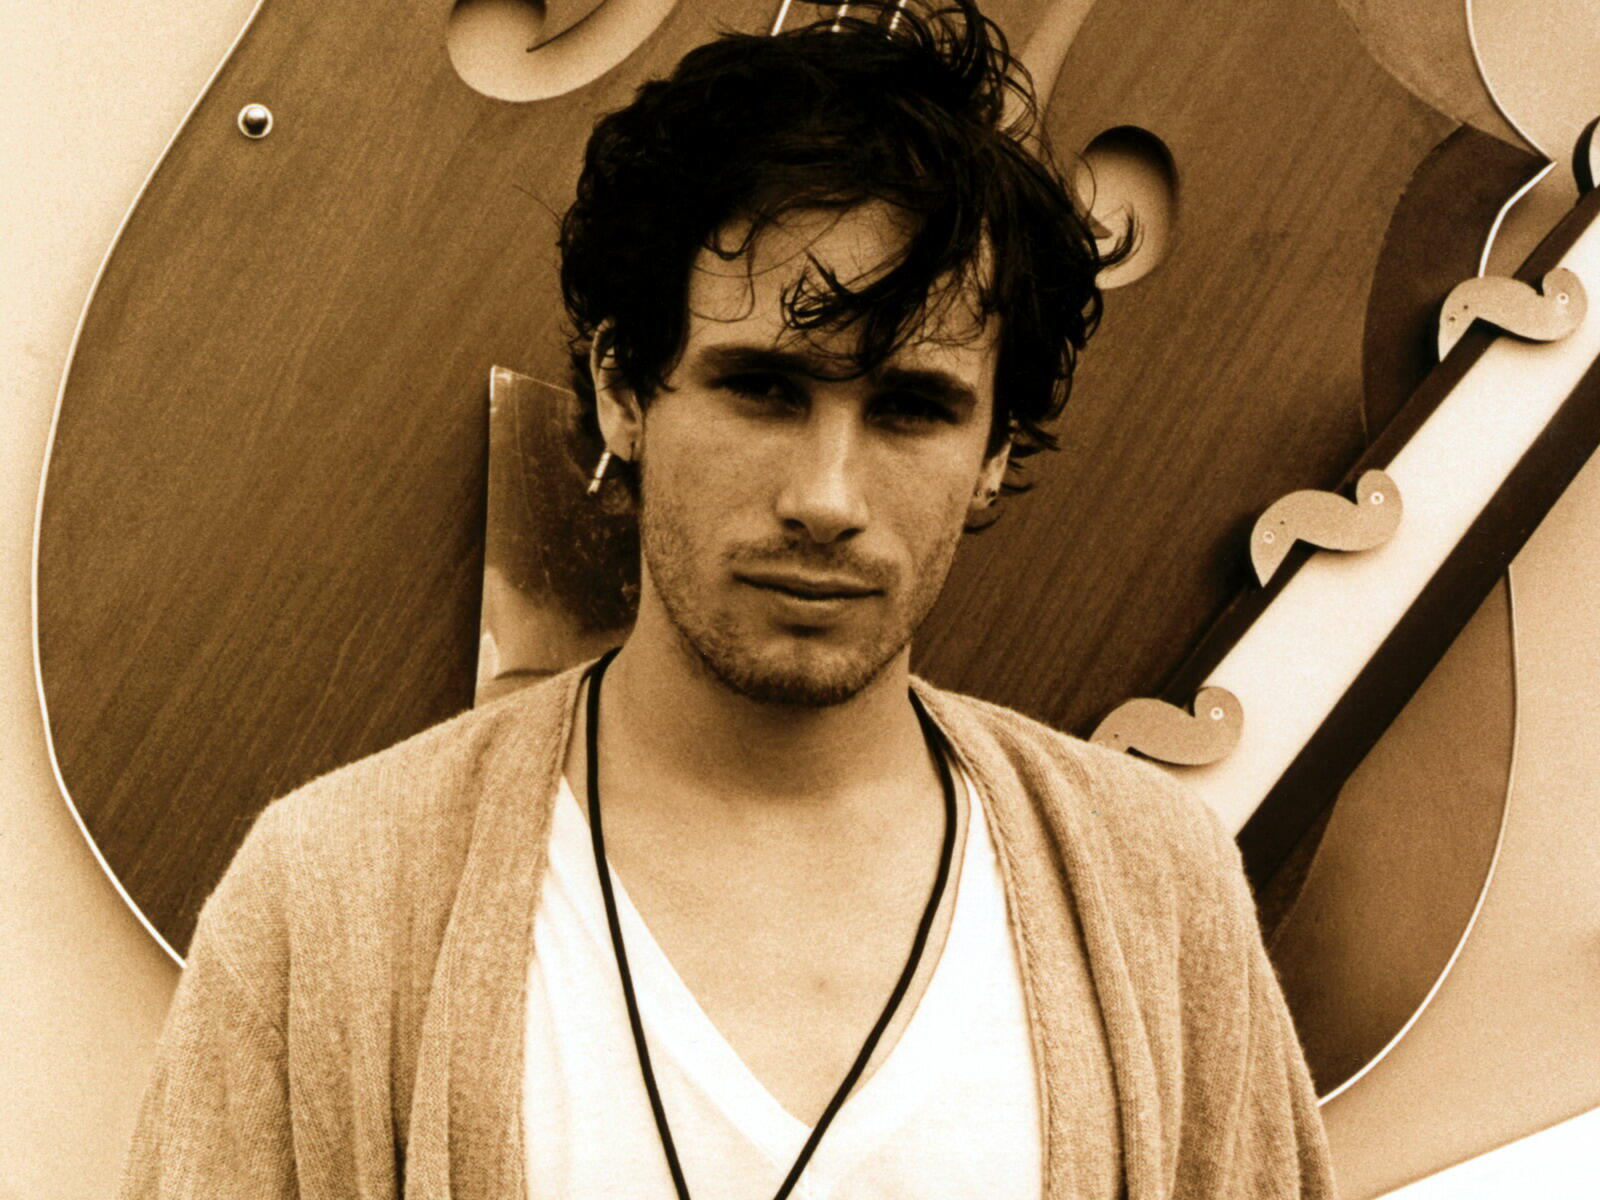 jeff buckley 1 10 Artists Best Known for Cover Songs